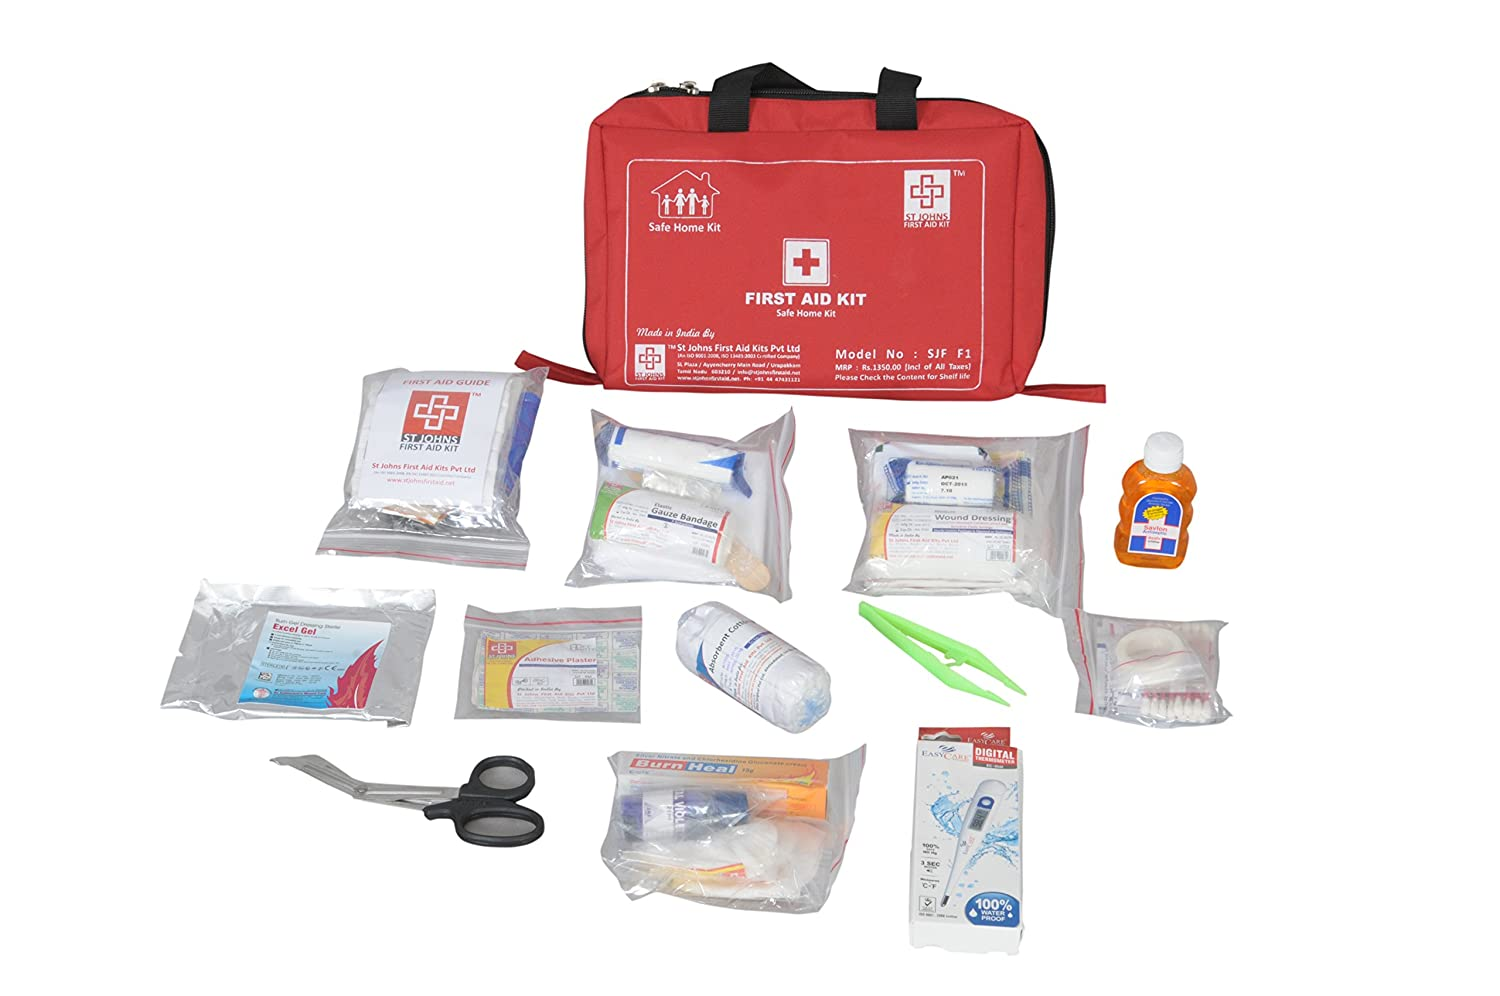 Home first-aid kit: everything about the first-aid kit